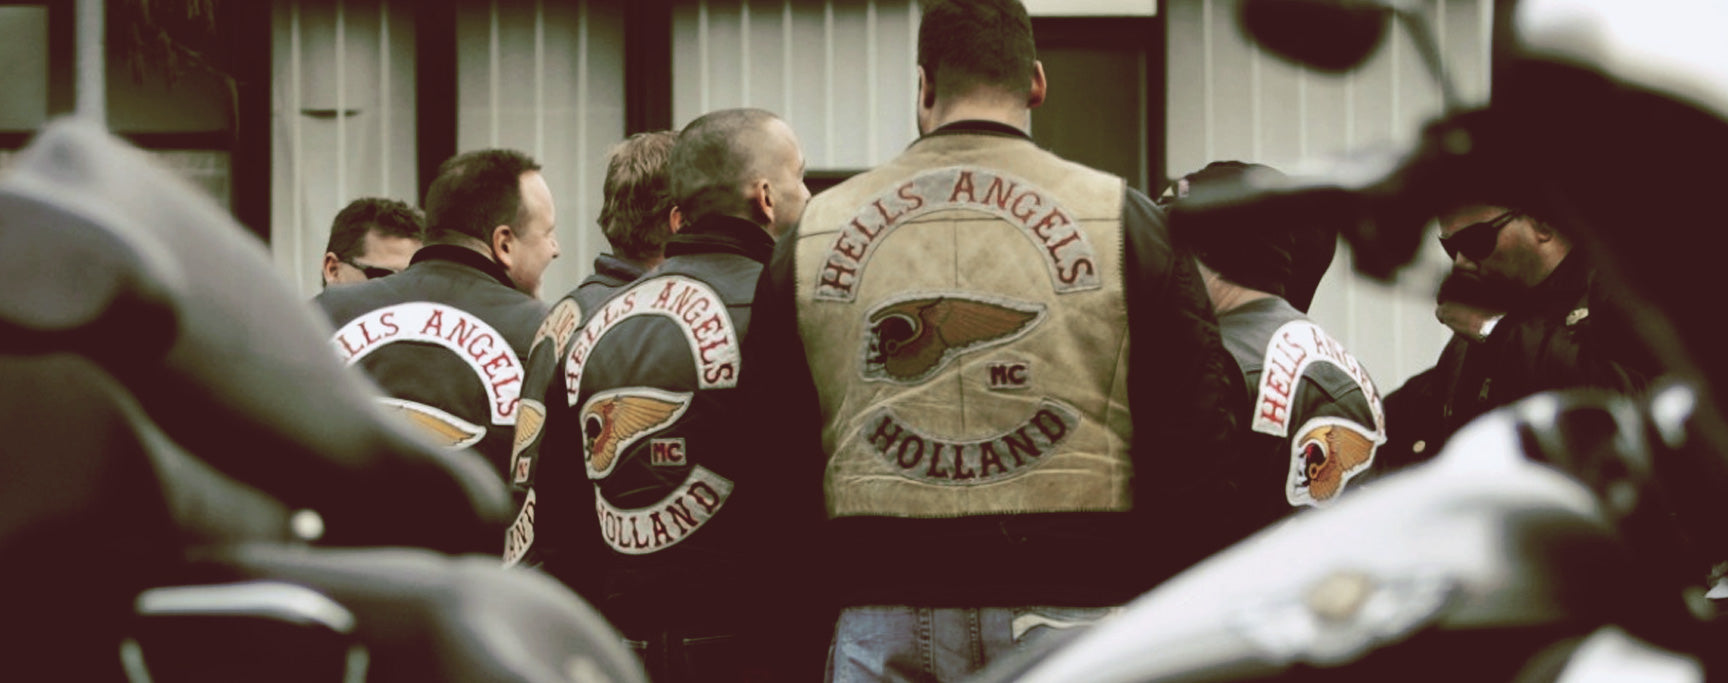 groupe hells angels